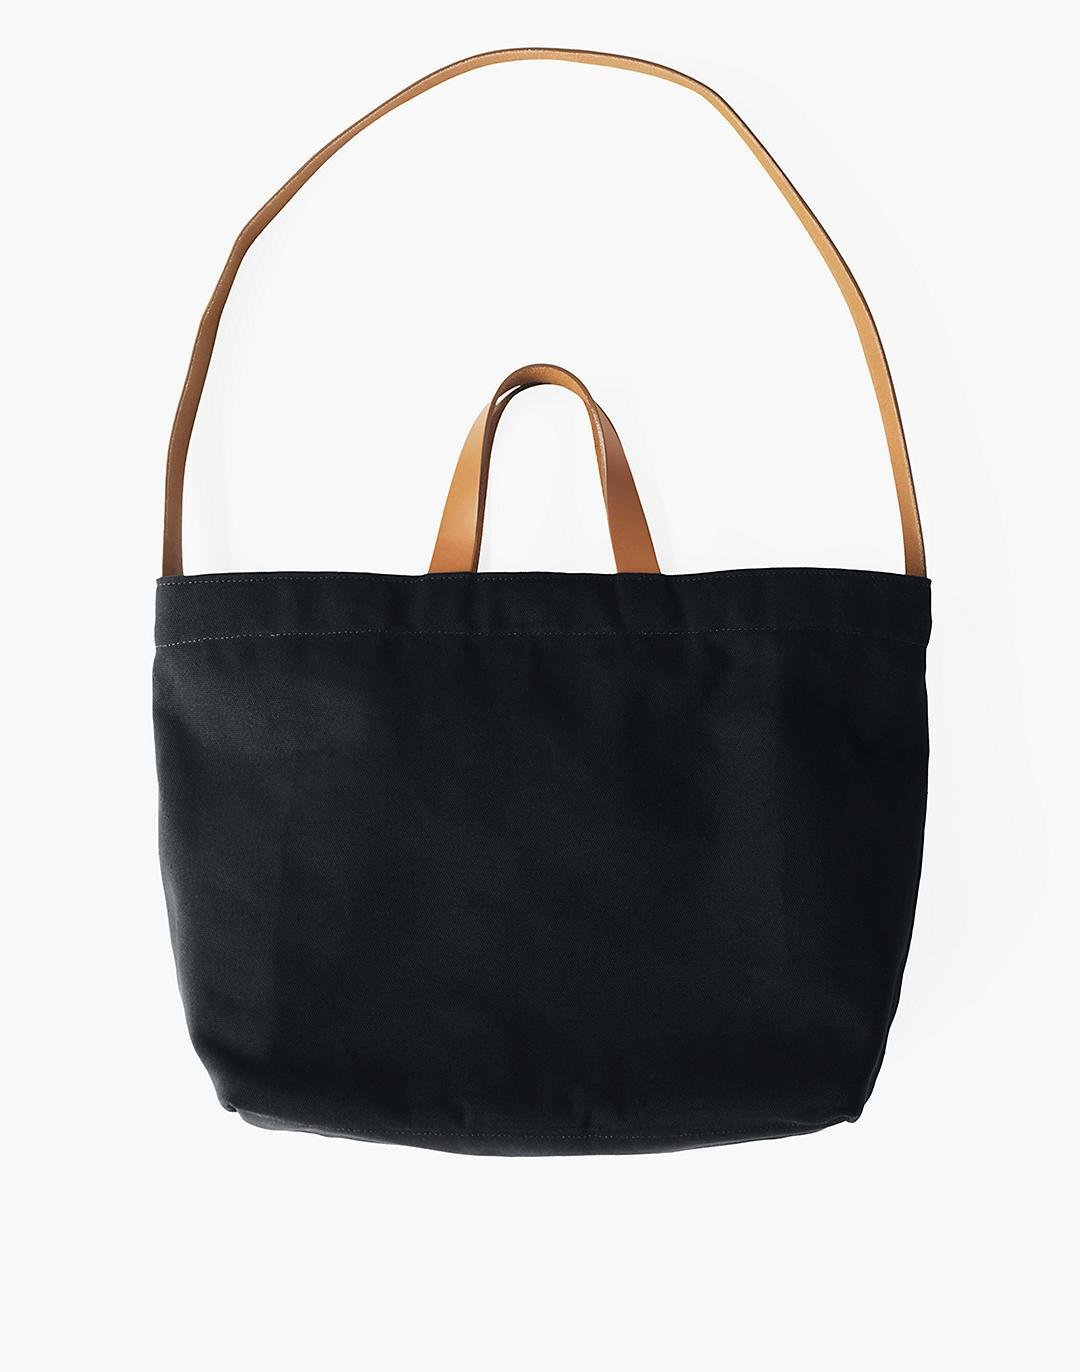 MAKR Canvas and Leather Sling Tote Bag